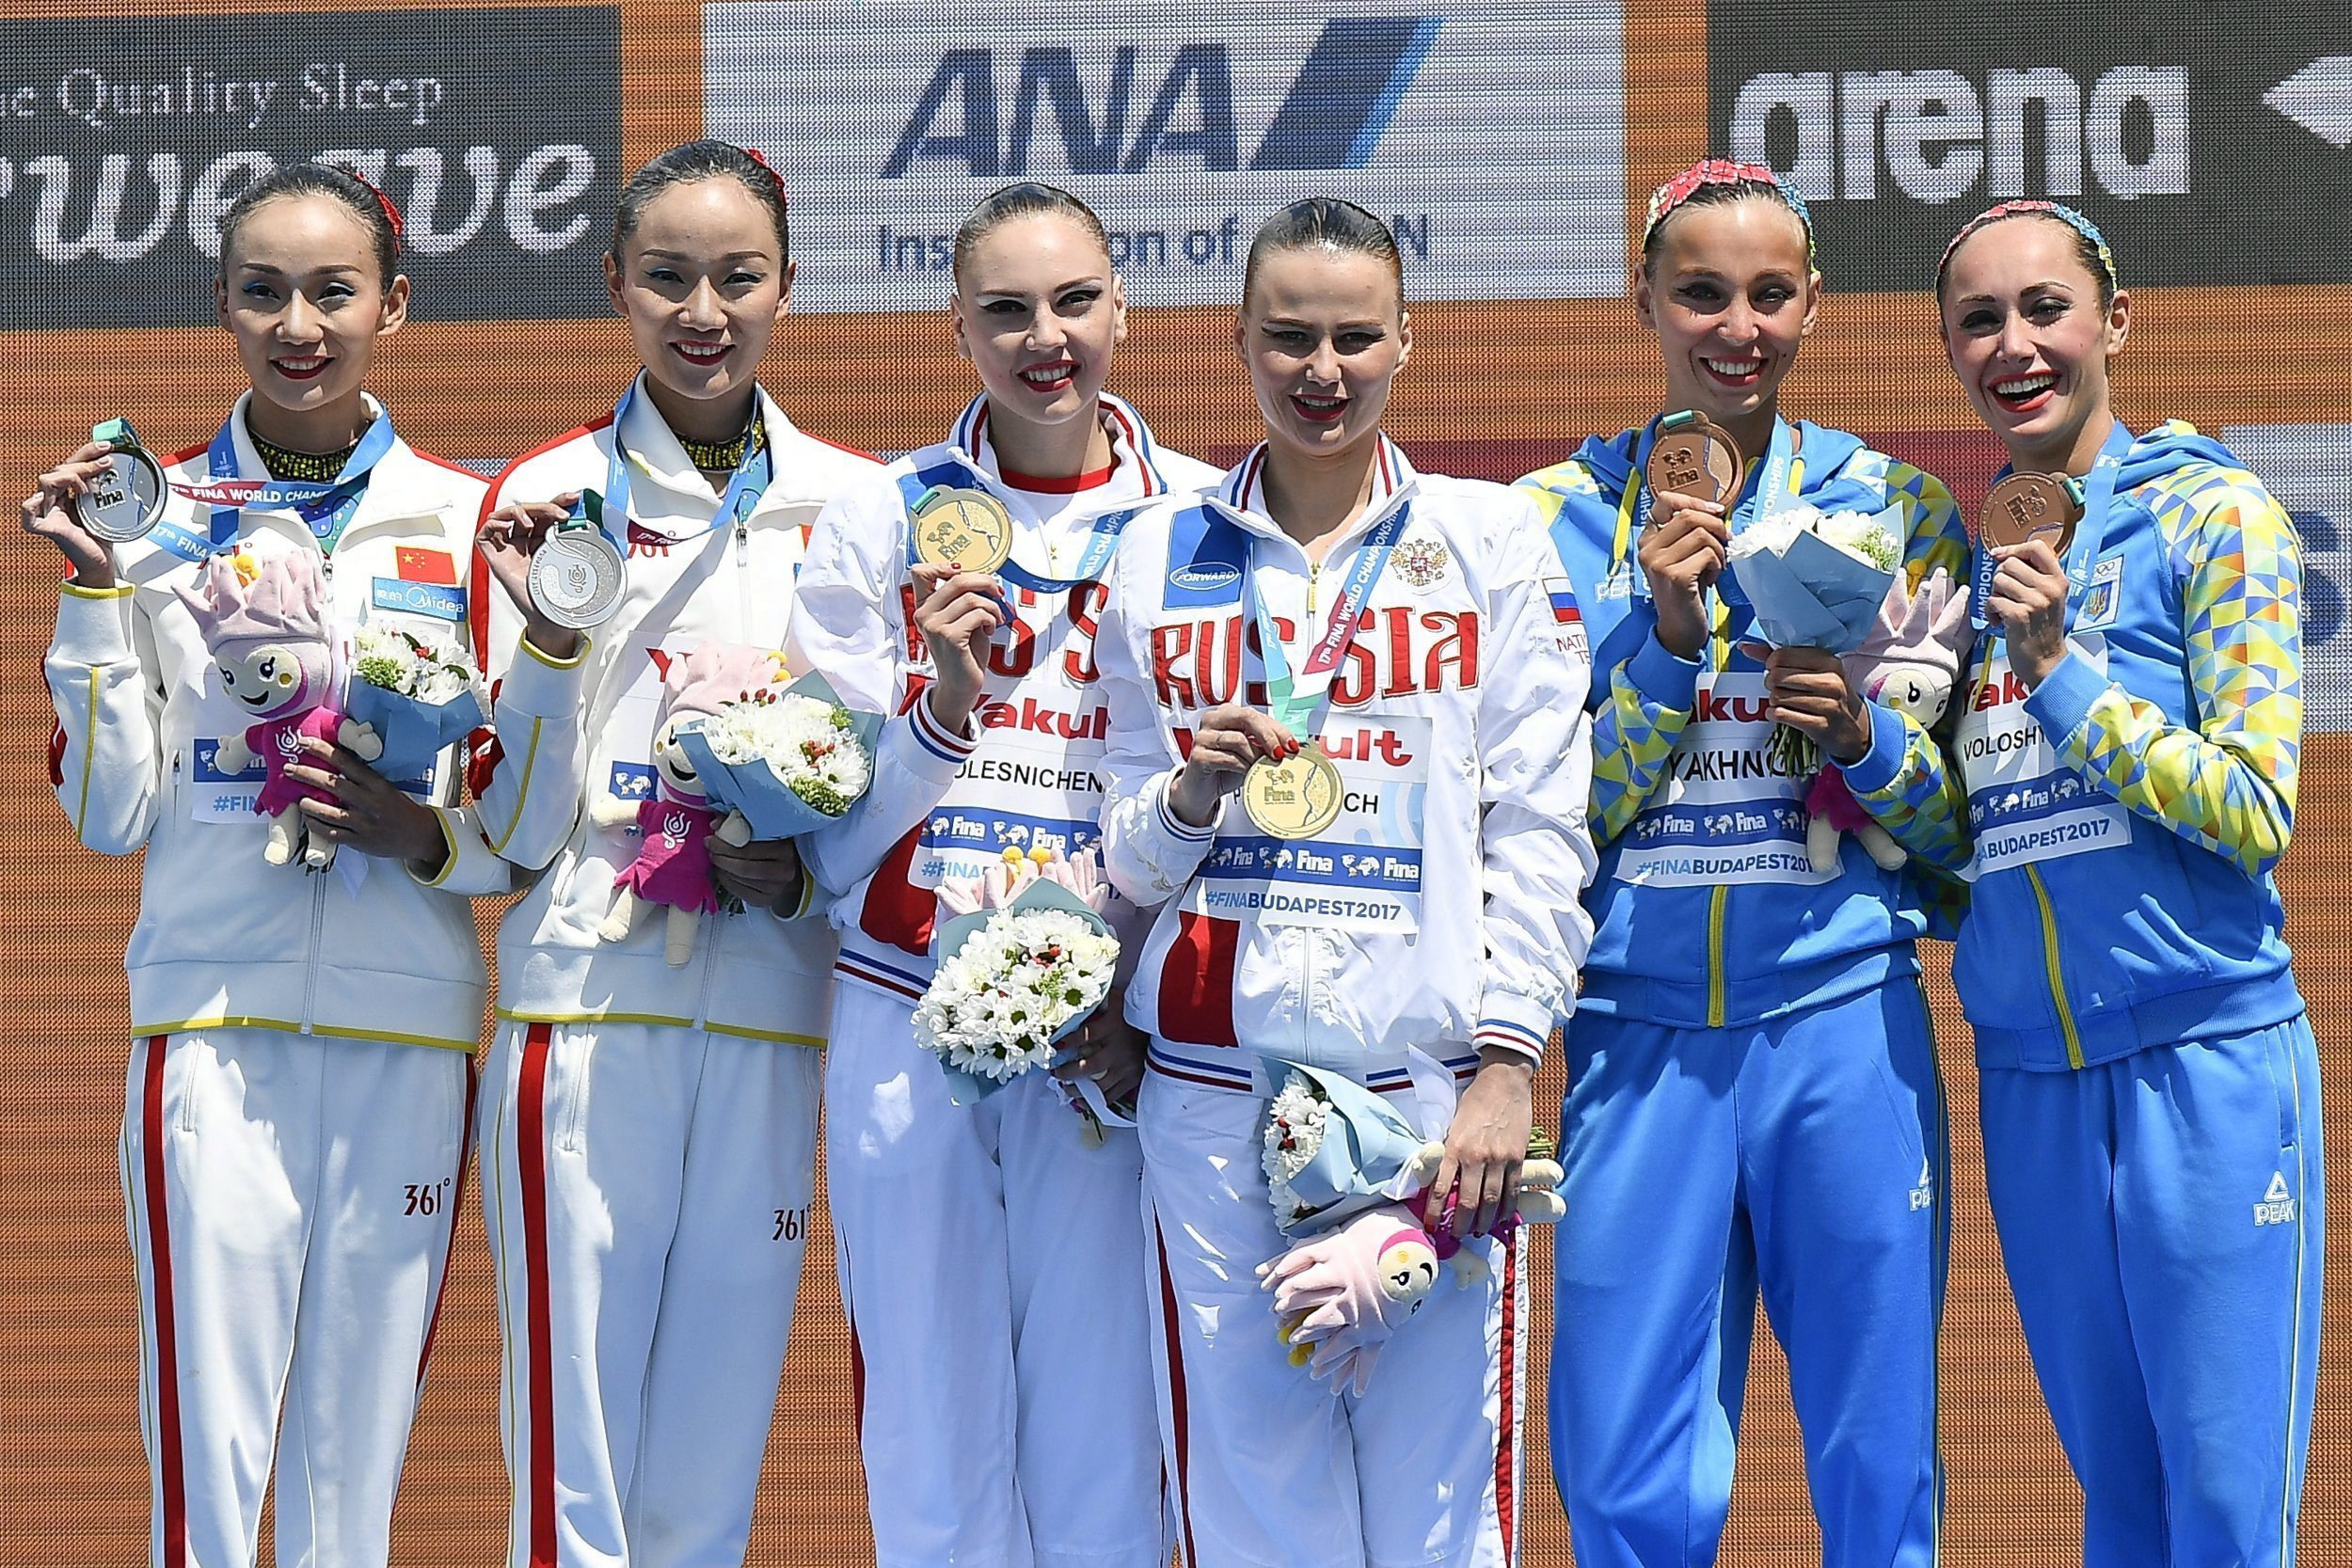 From left, silver medalists Tingting Jiang and Wenwen Jiang of China, gold medalists Svetlana Kolesnichenko and Alexandra Patskevich of Russia, and bronze medalists Yelyzaveta Yakhno and Anna Voloshyna of Ukraine pose with their medals during the medal ce